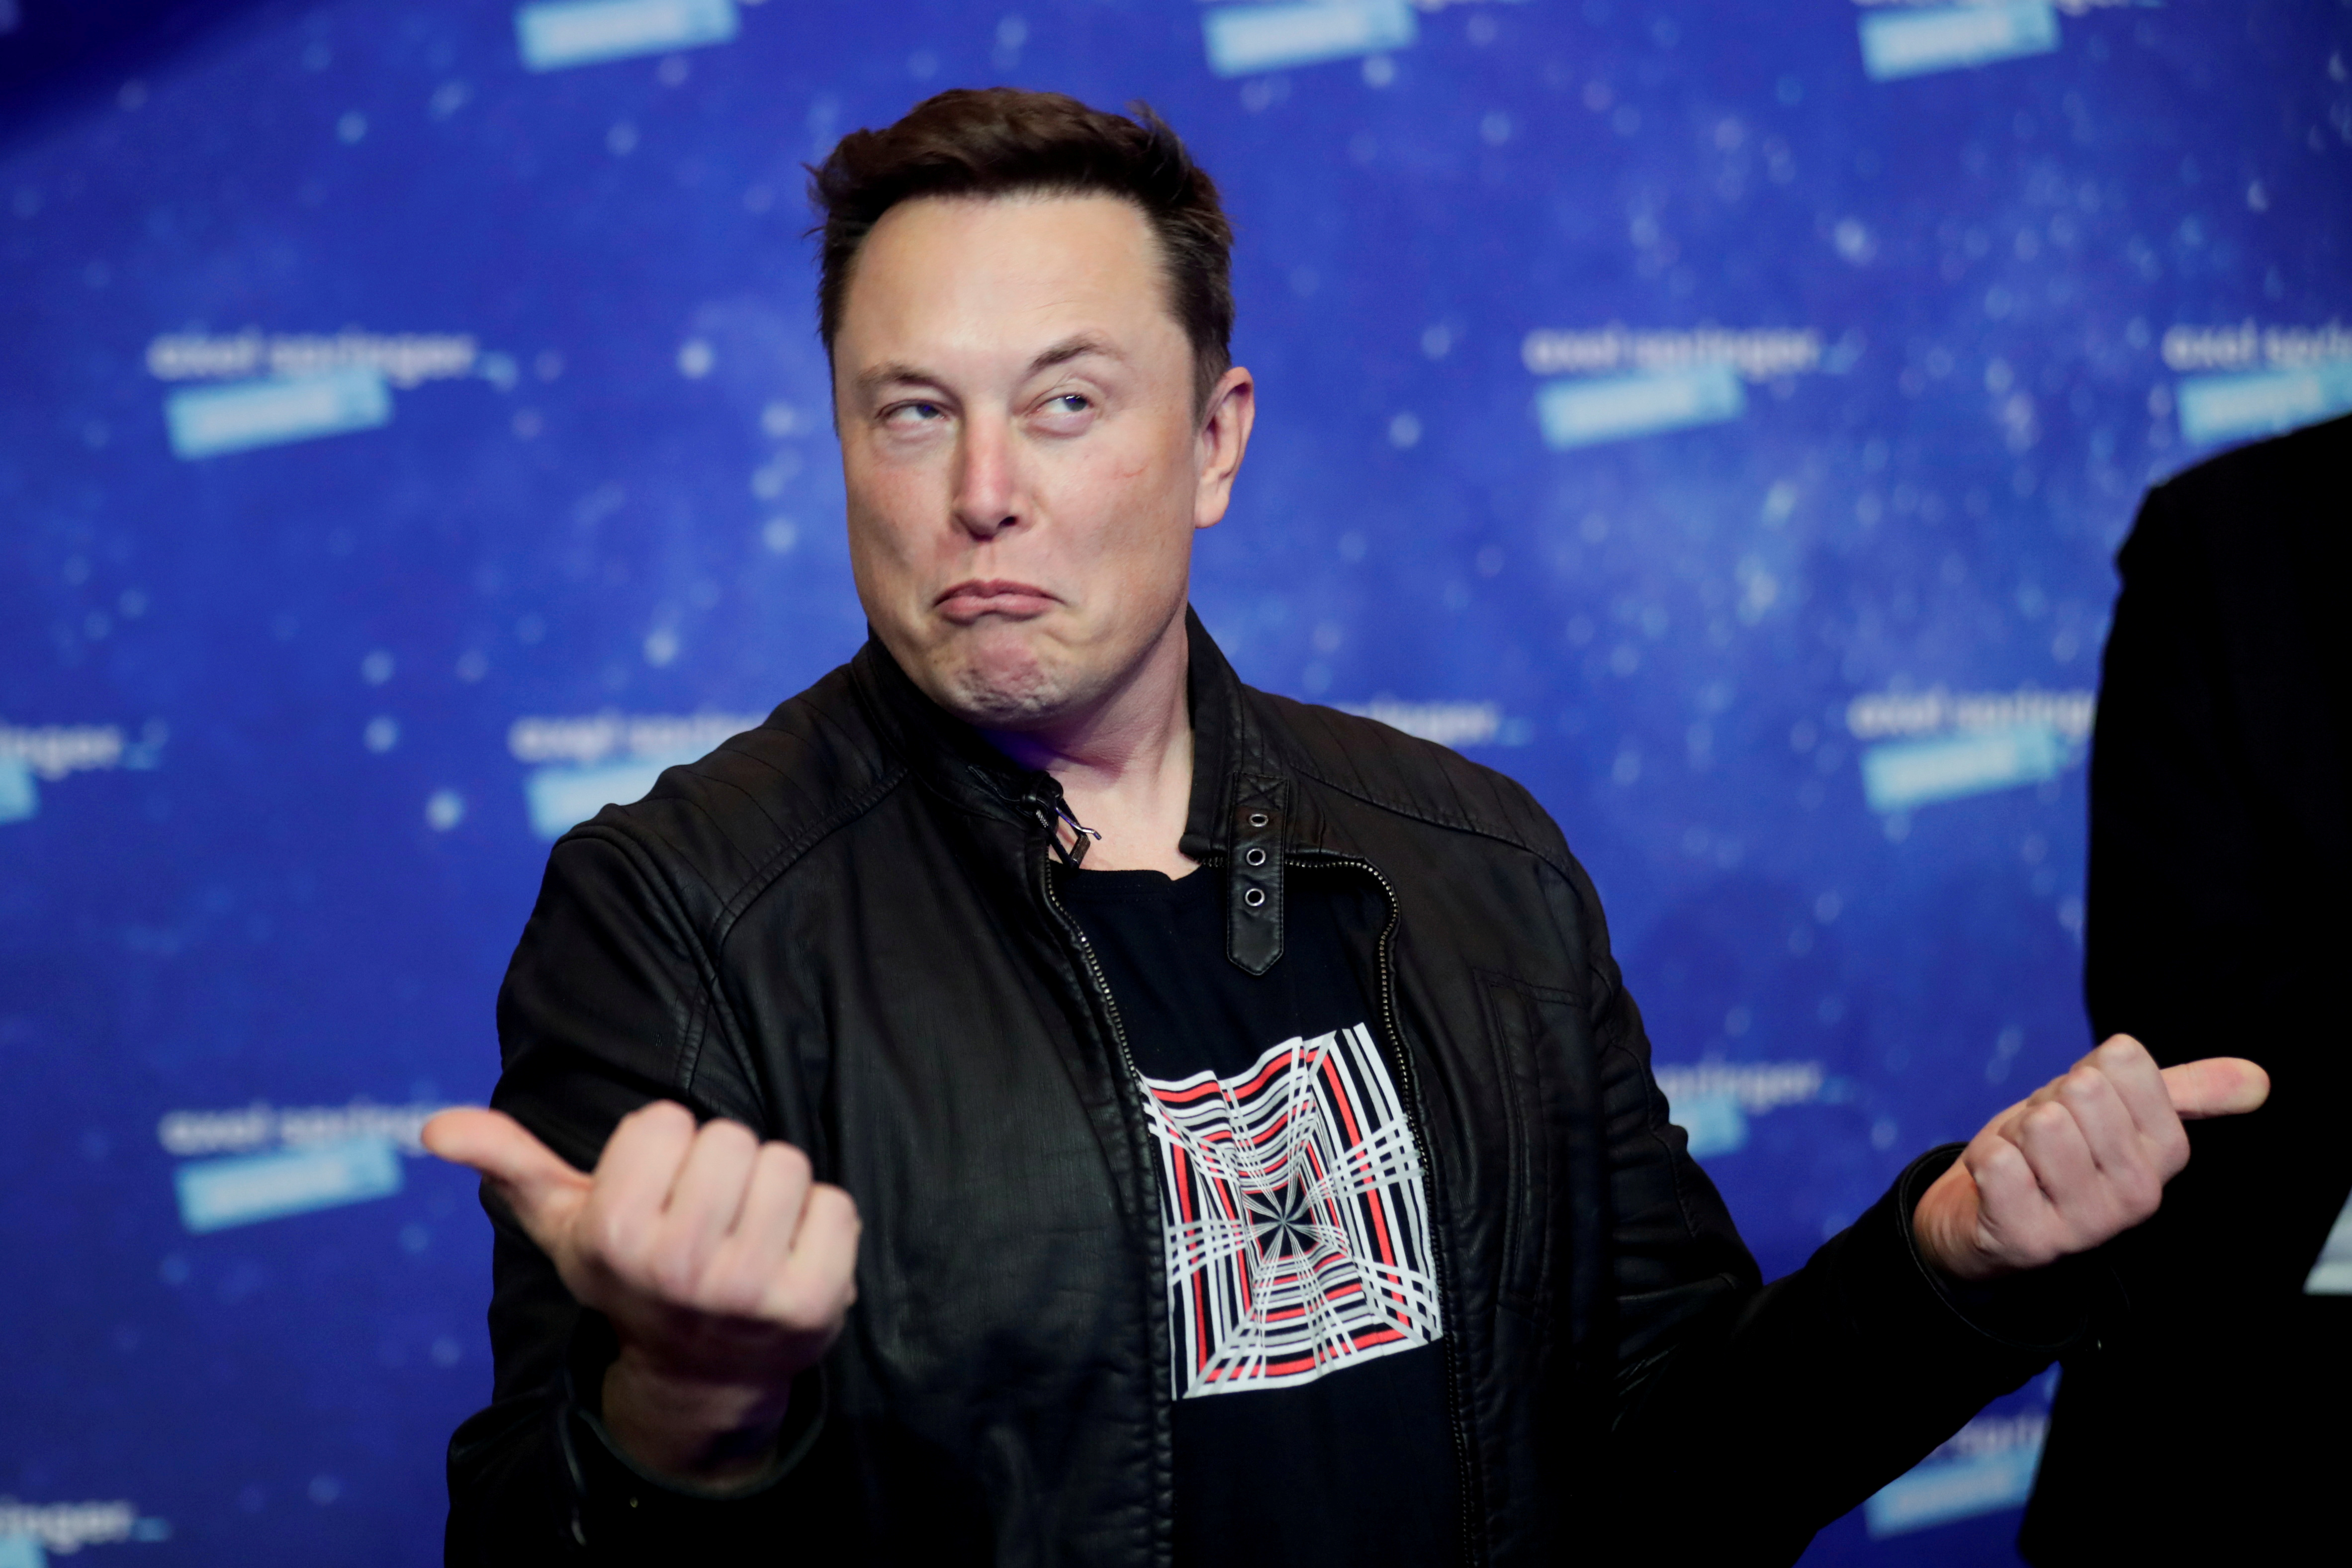 SpaceX owner and Tesla CEO Elon Musk grimaces after arriving on the red carpet for the Axel Springer award, in Berlin, Germany, December 1, 2020. REUTERS/Hannibal Hanschke/Pool